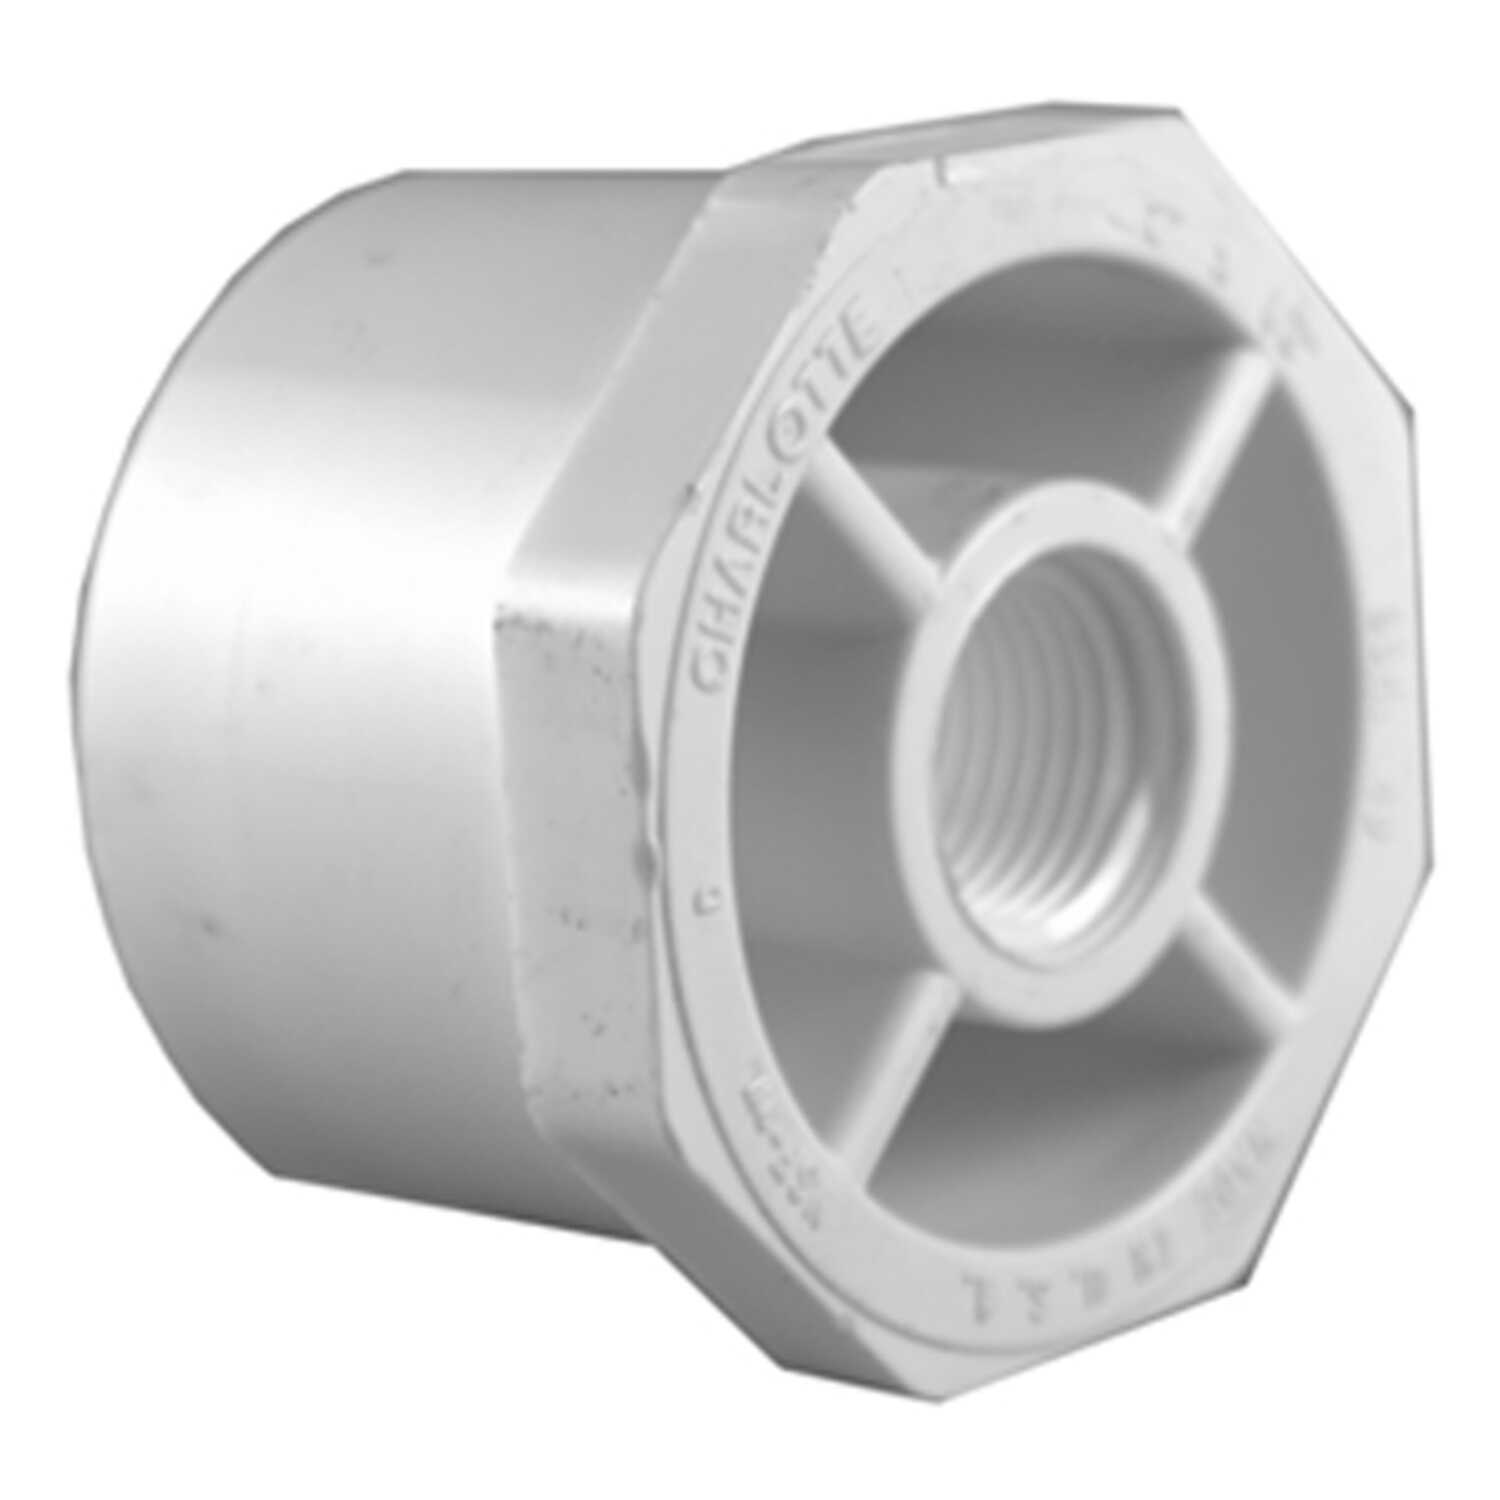 Charlotte Pipe  Schedule 40  2 in. Spigot   x 1-1/2 in. Dia. FPT  PVC  Reducing Bushing